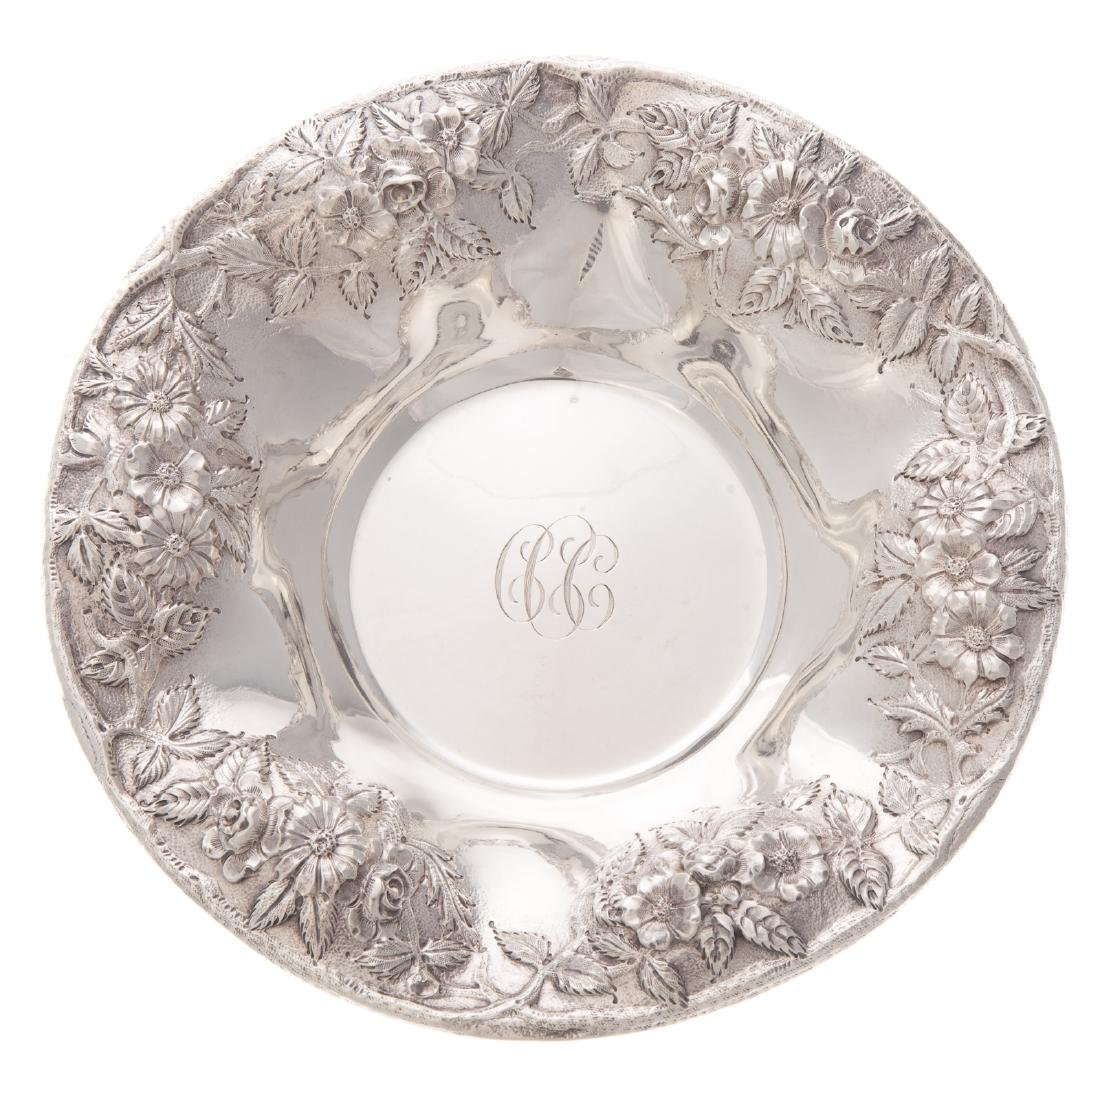 Kirk repousse sterling vegetable bowl